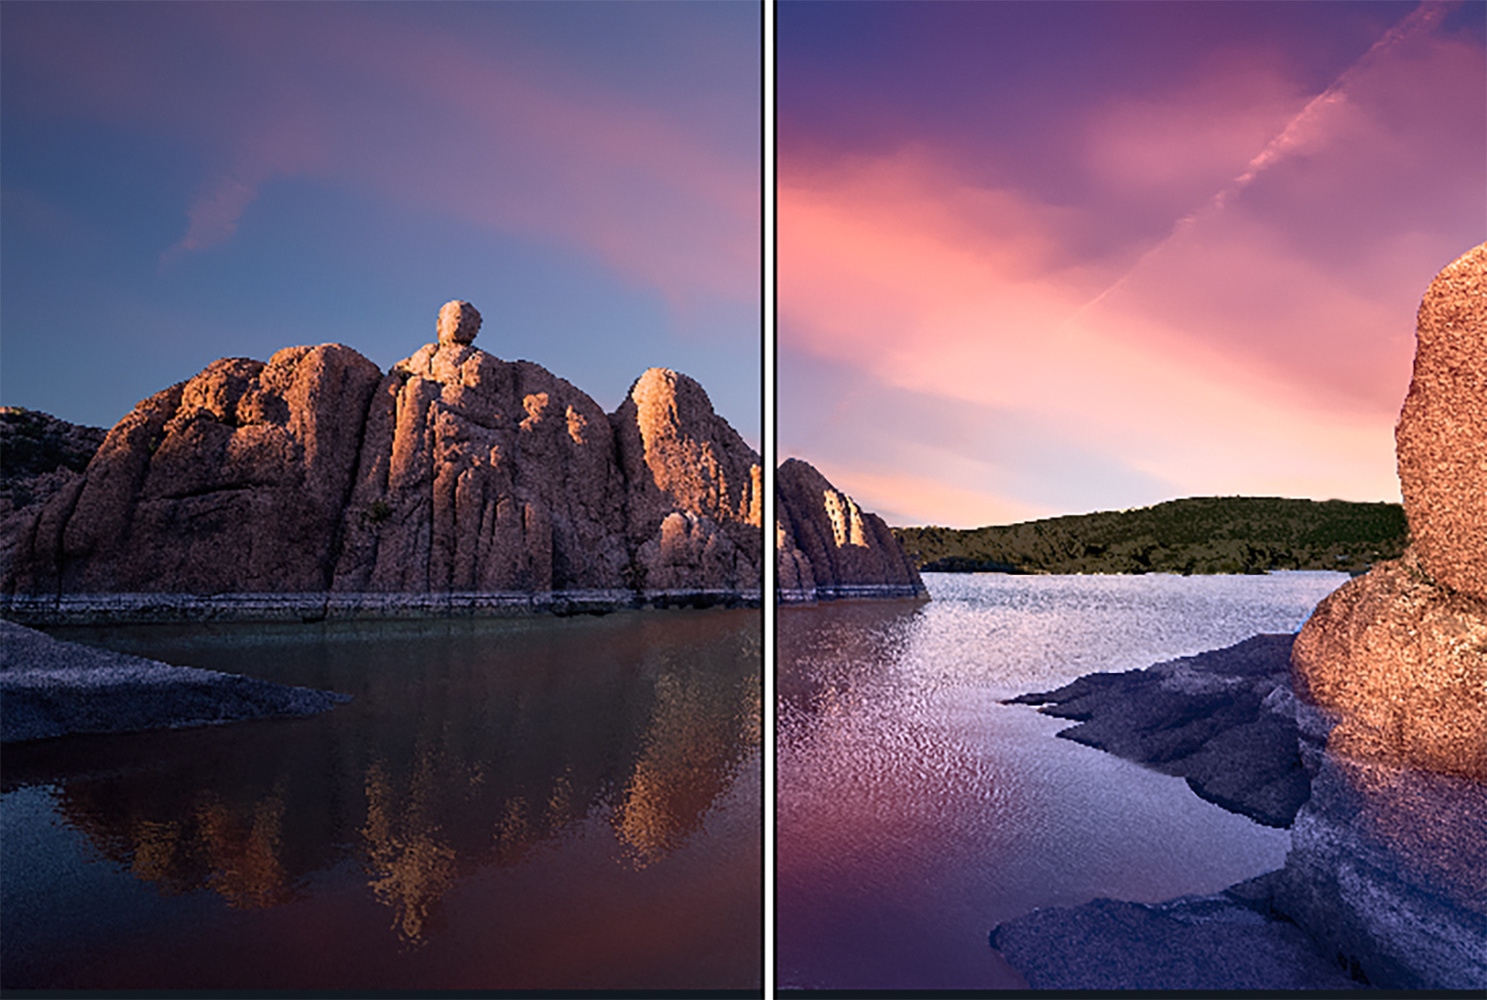 Fstoppers Reviews Topaz Adjust AI: Does AI Really Help With Editing